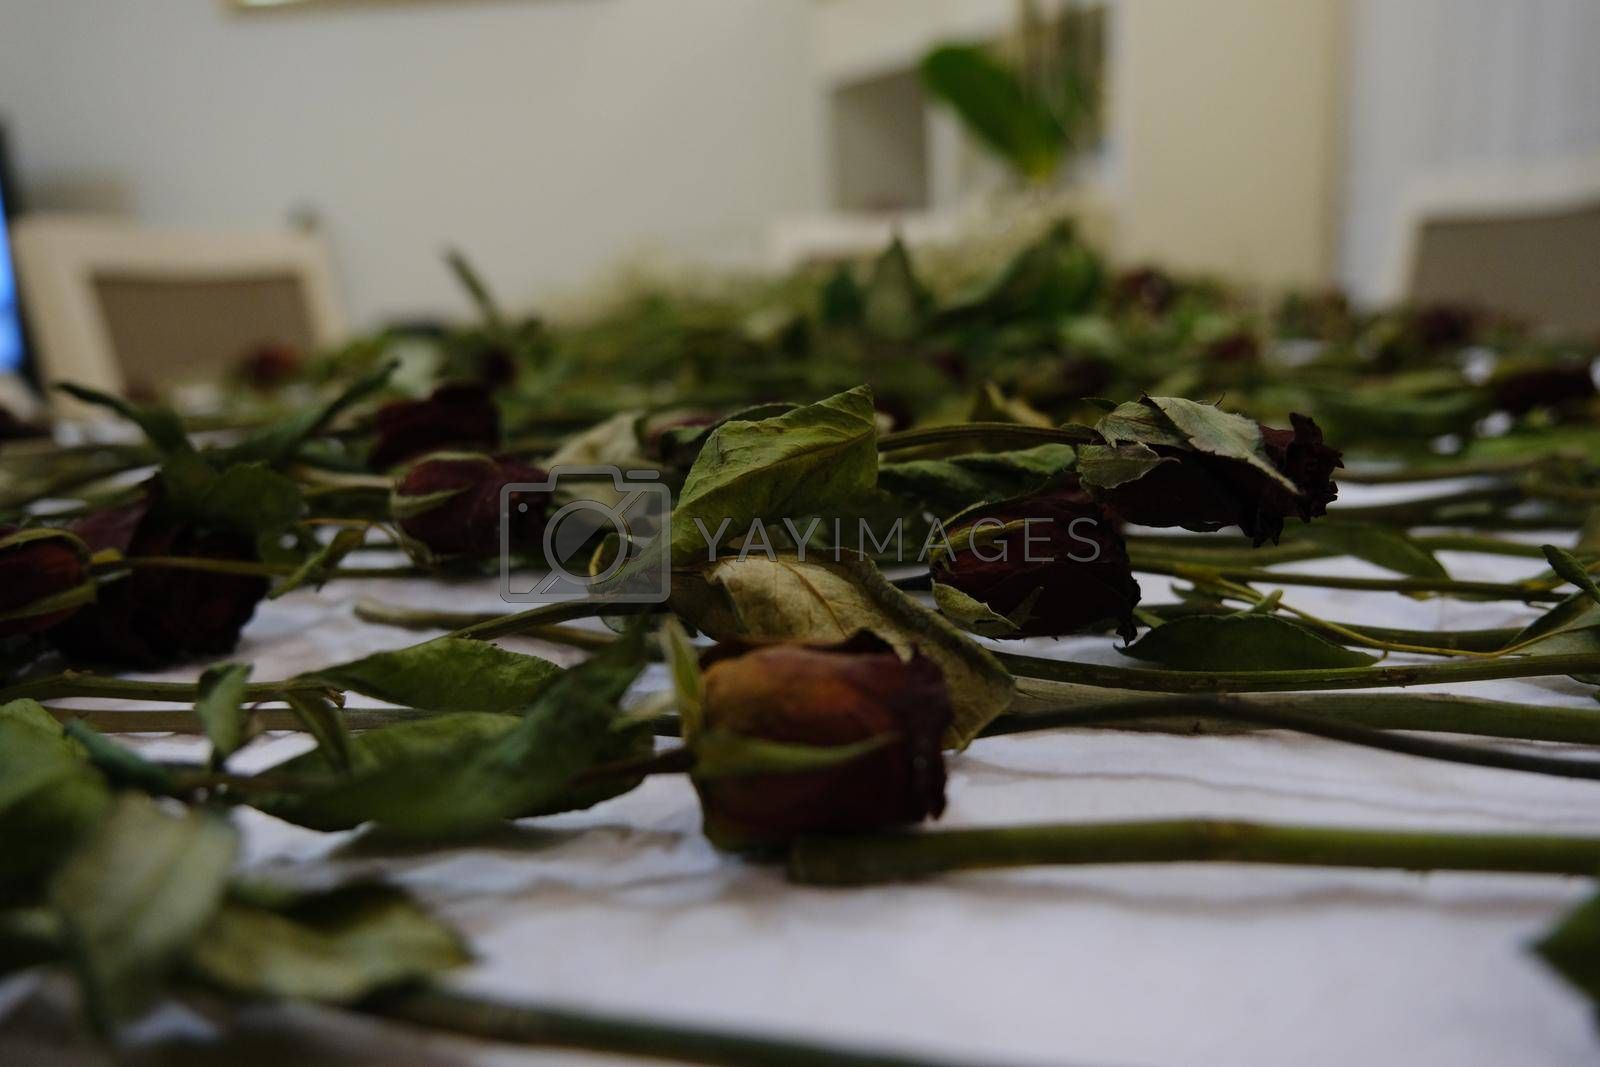 It depicts some faded withered roses on the table